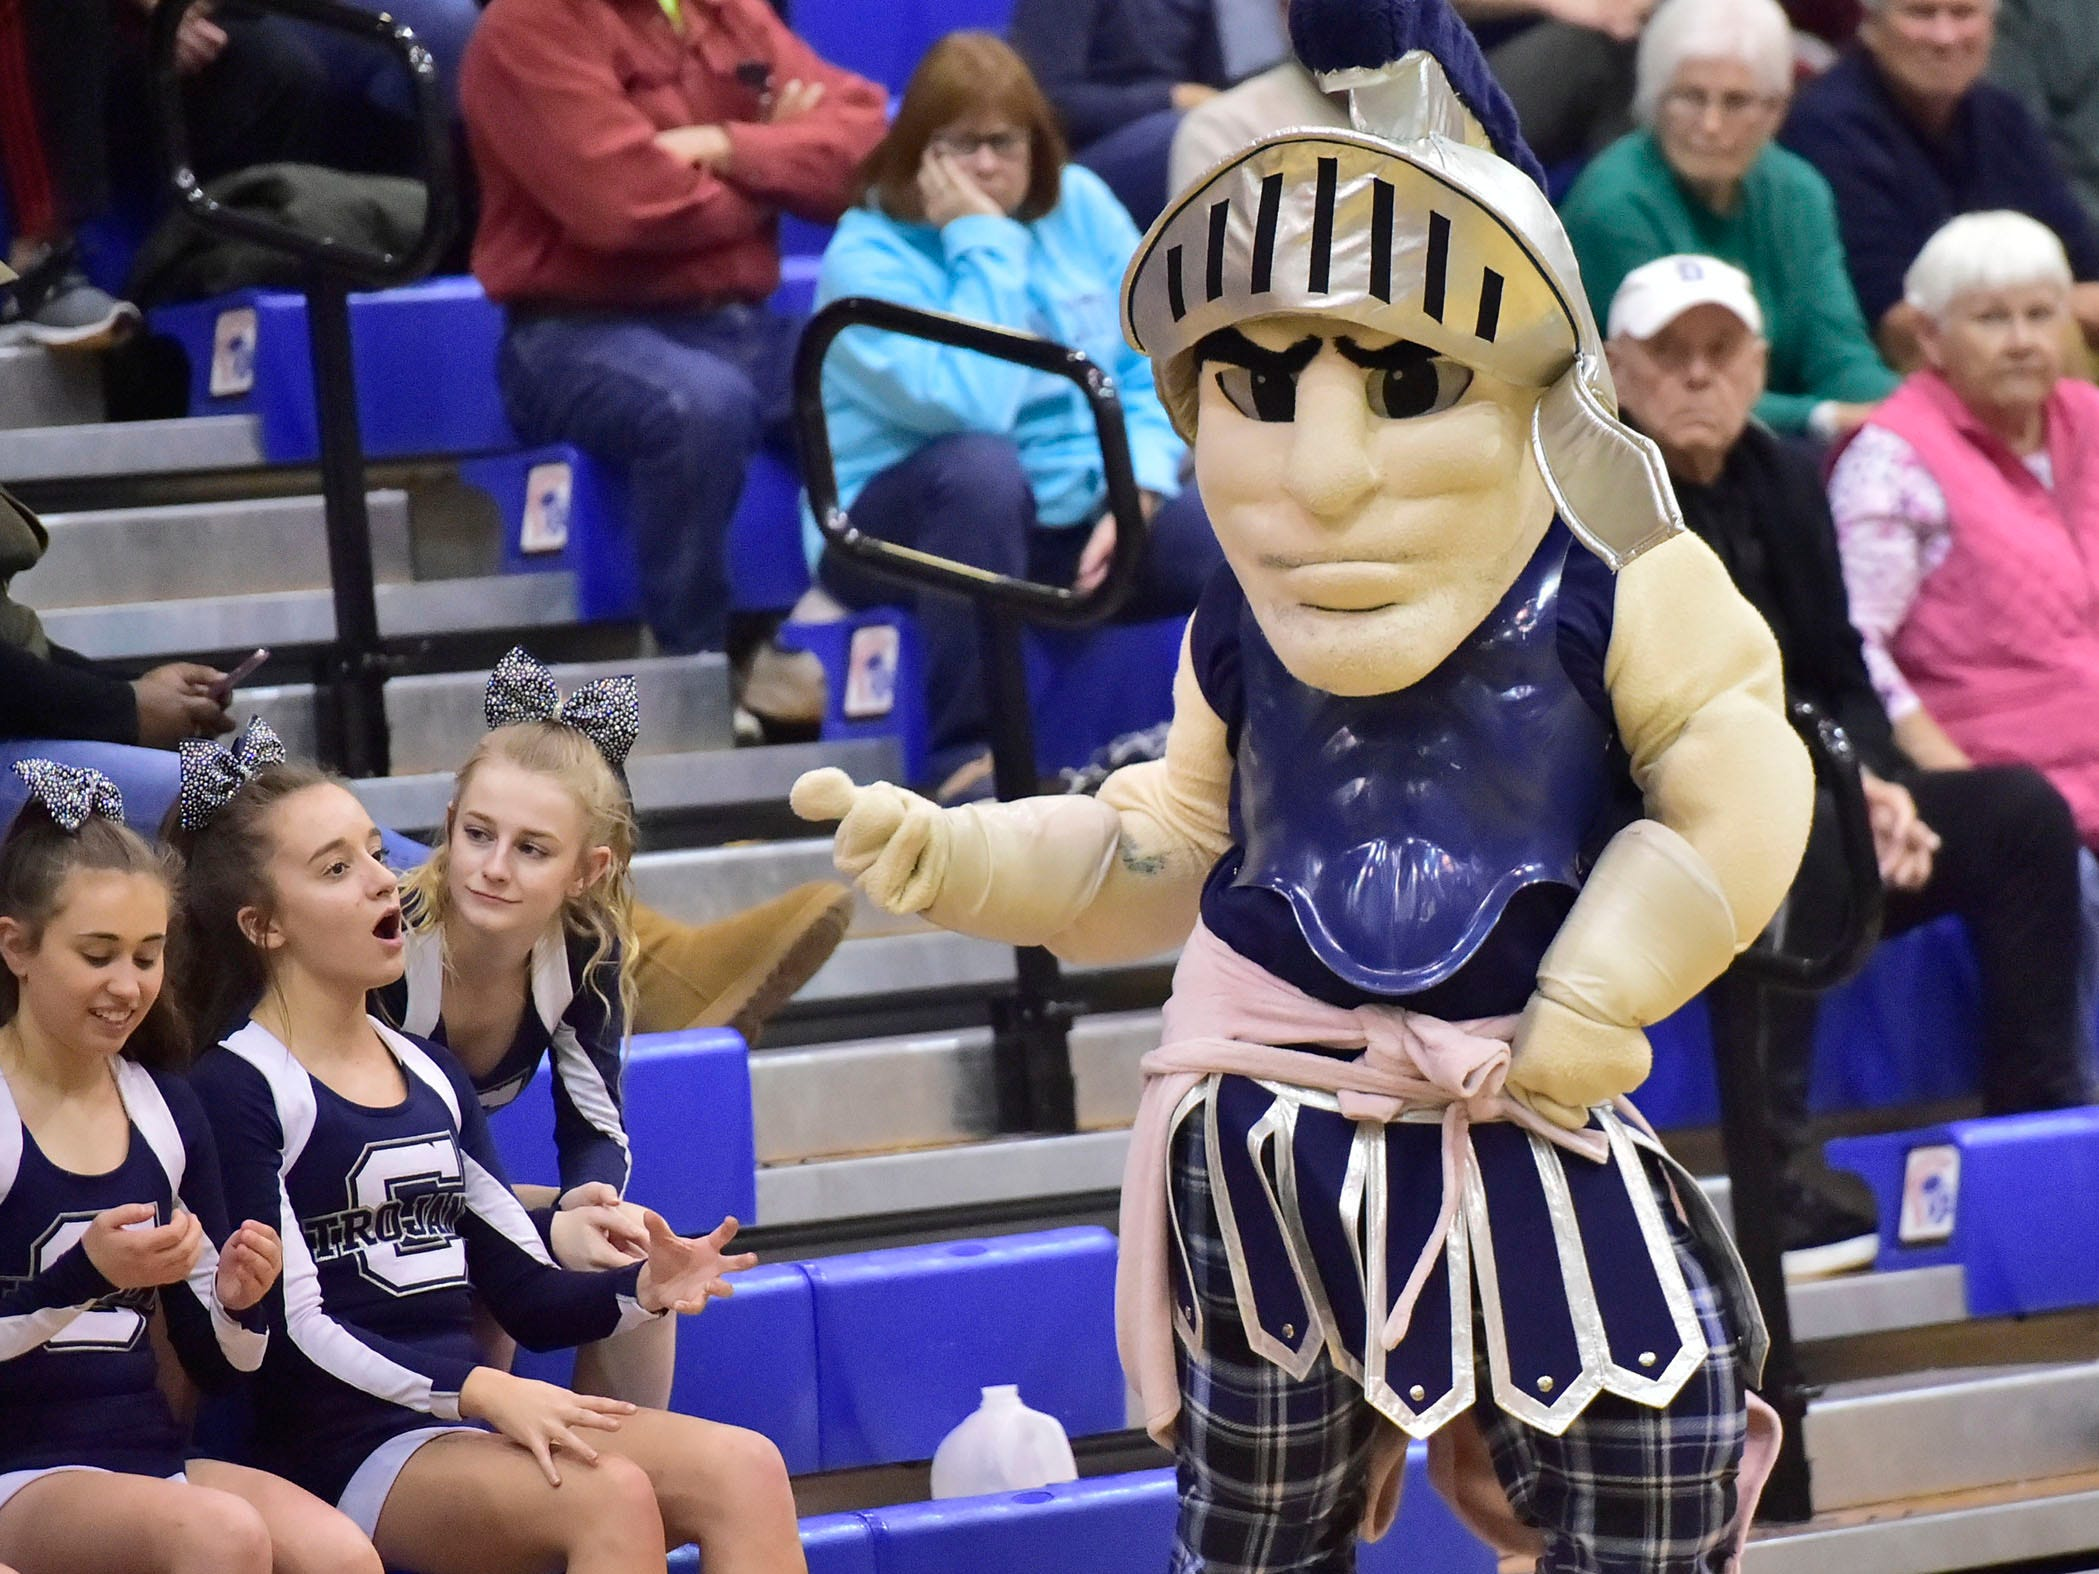 The Chambersburg Trojan mascot entertains the crowd. Chambersburg dropped a buzzer-beater 42-40 to State College during  D3 basketball, Friday, Dec. 14, 2018.